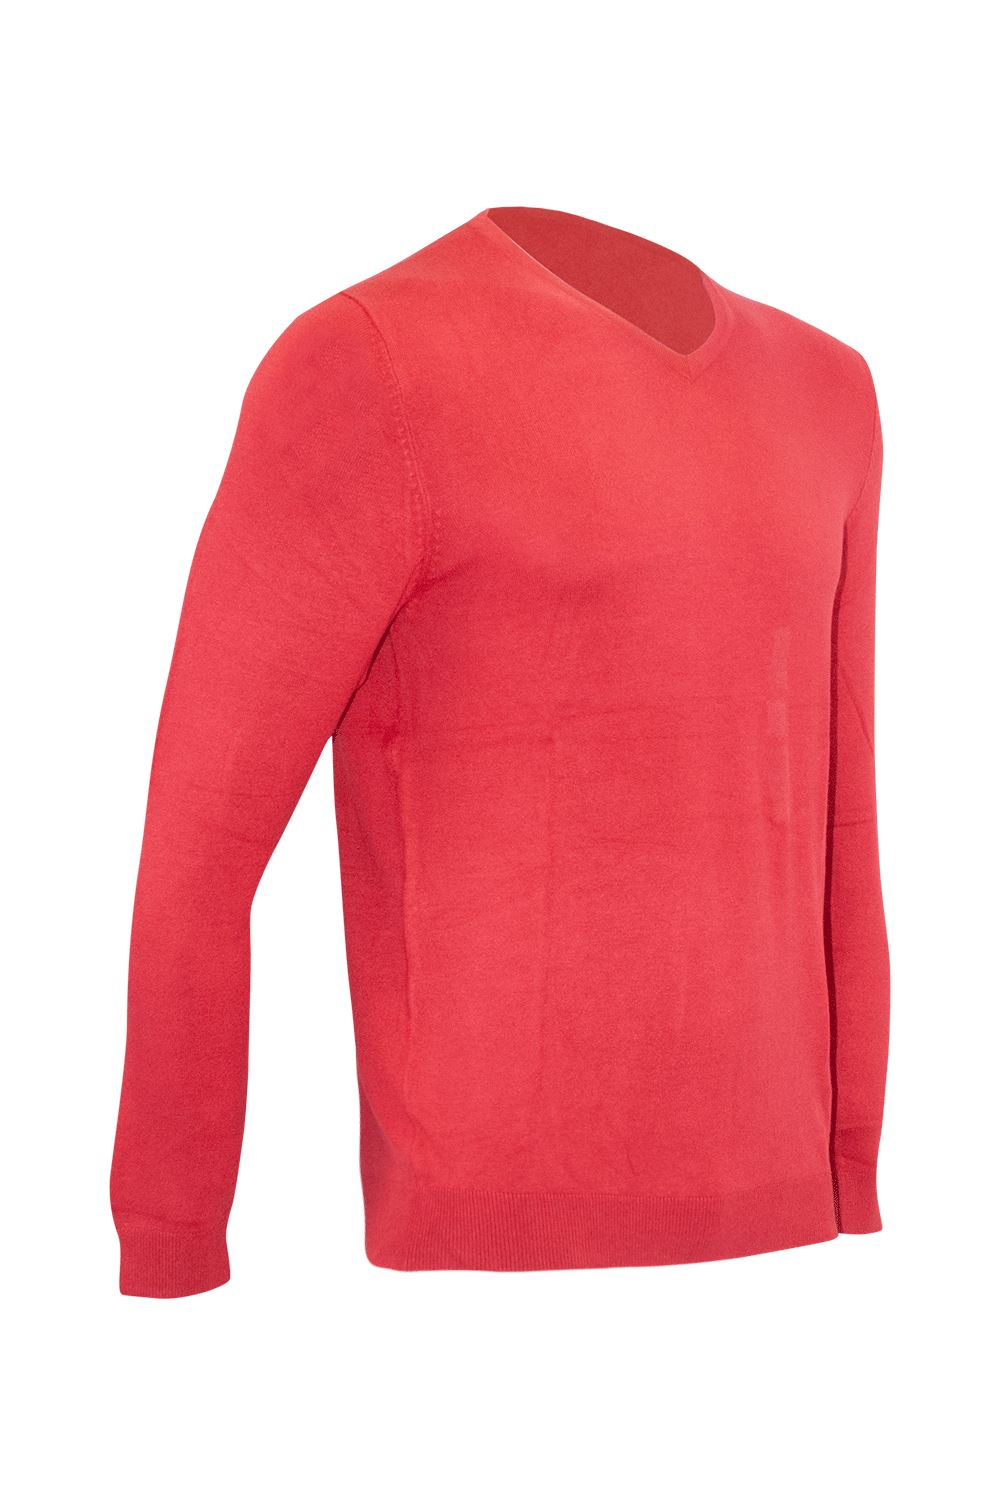 Homme à Manches Longues Côtelé Knitwear Pull Sweater Tricot Col V Pull